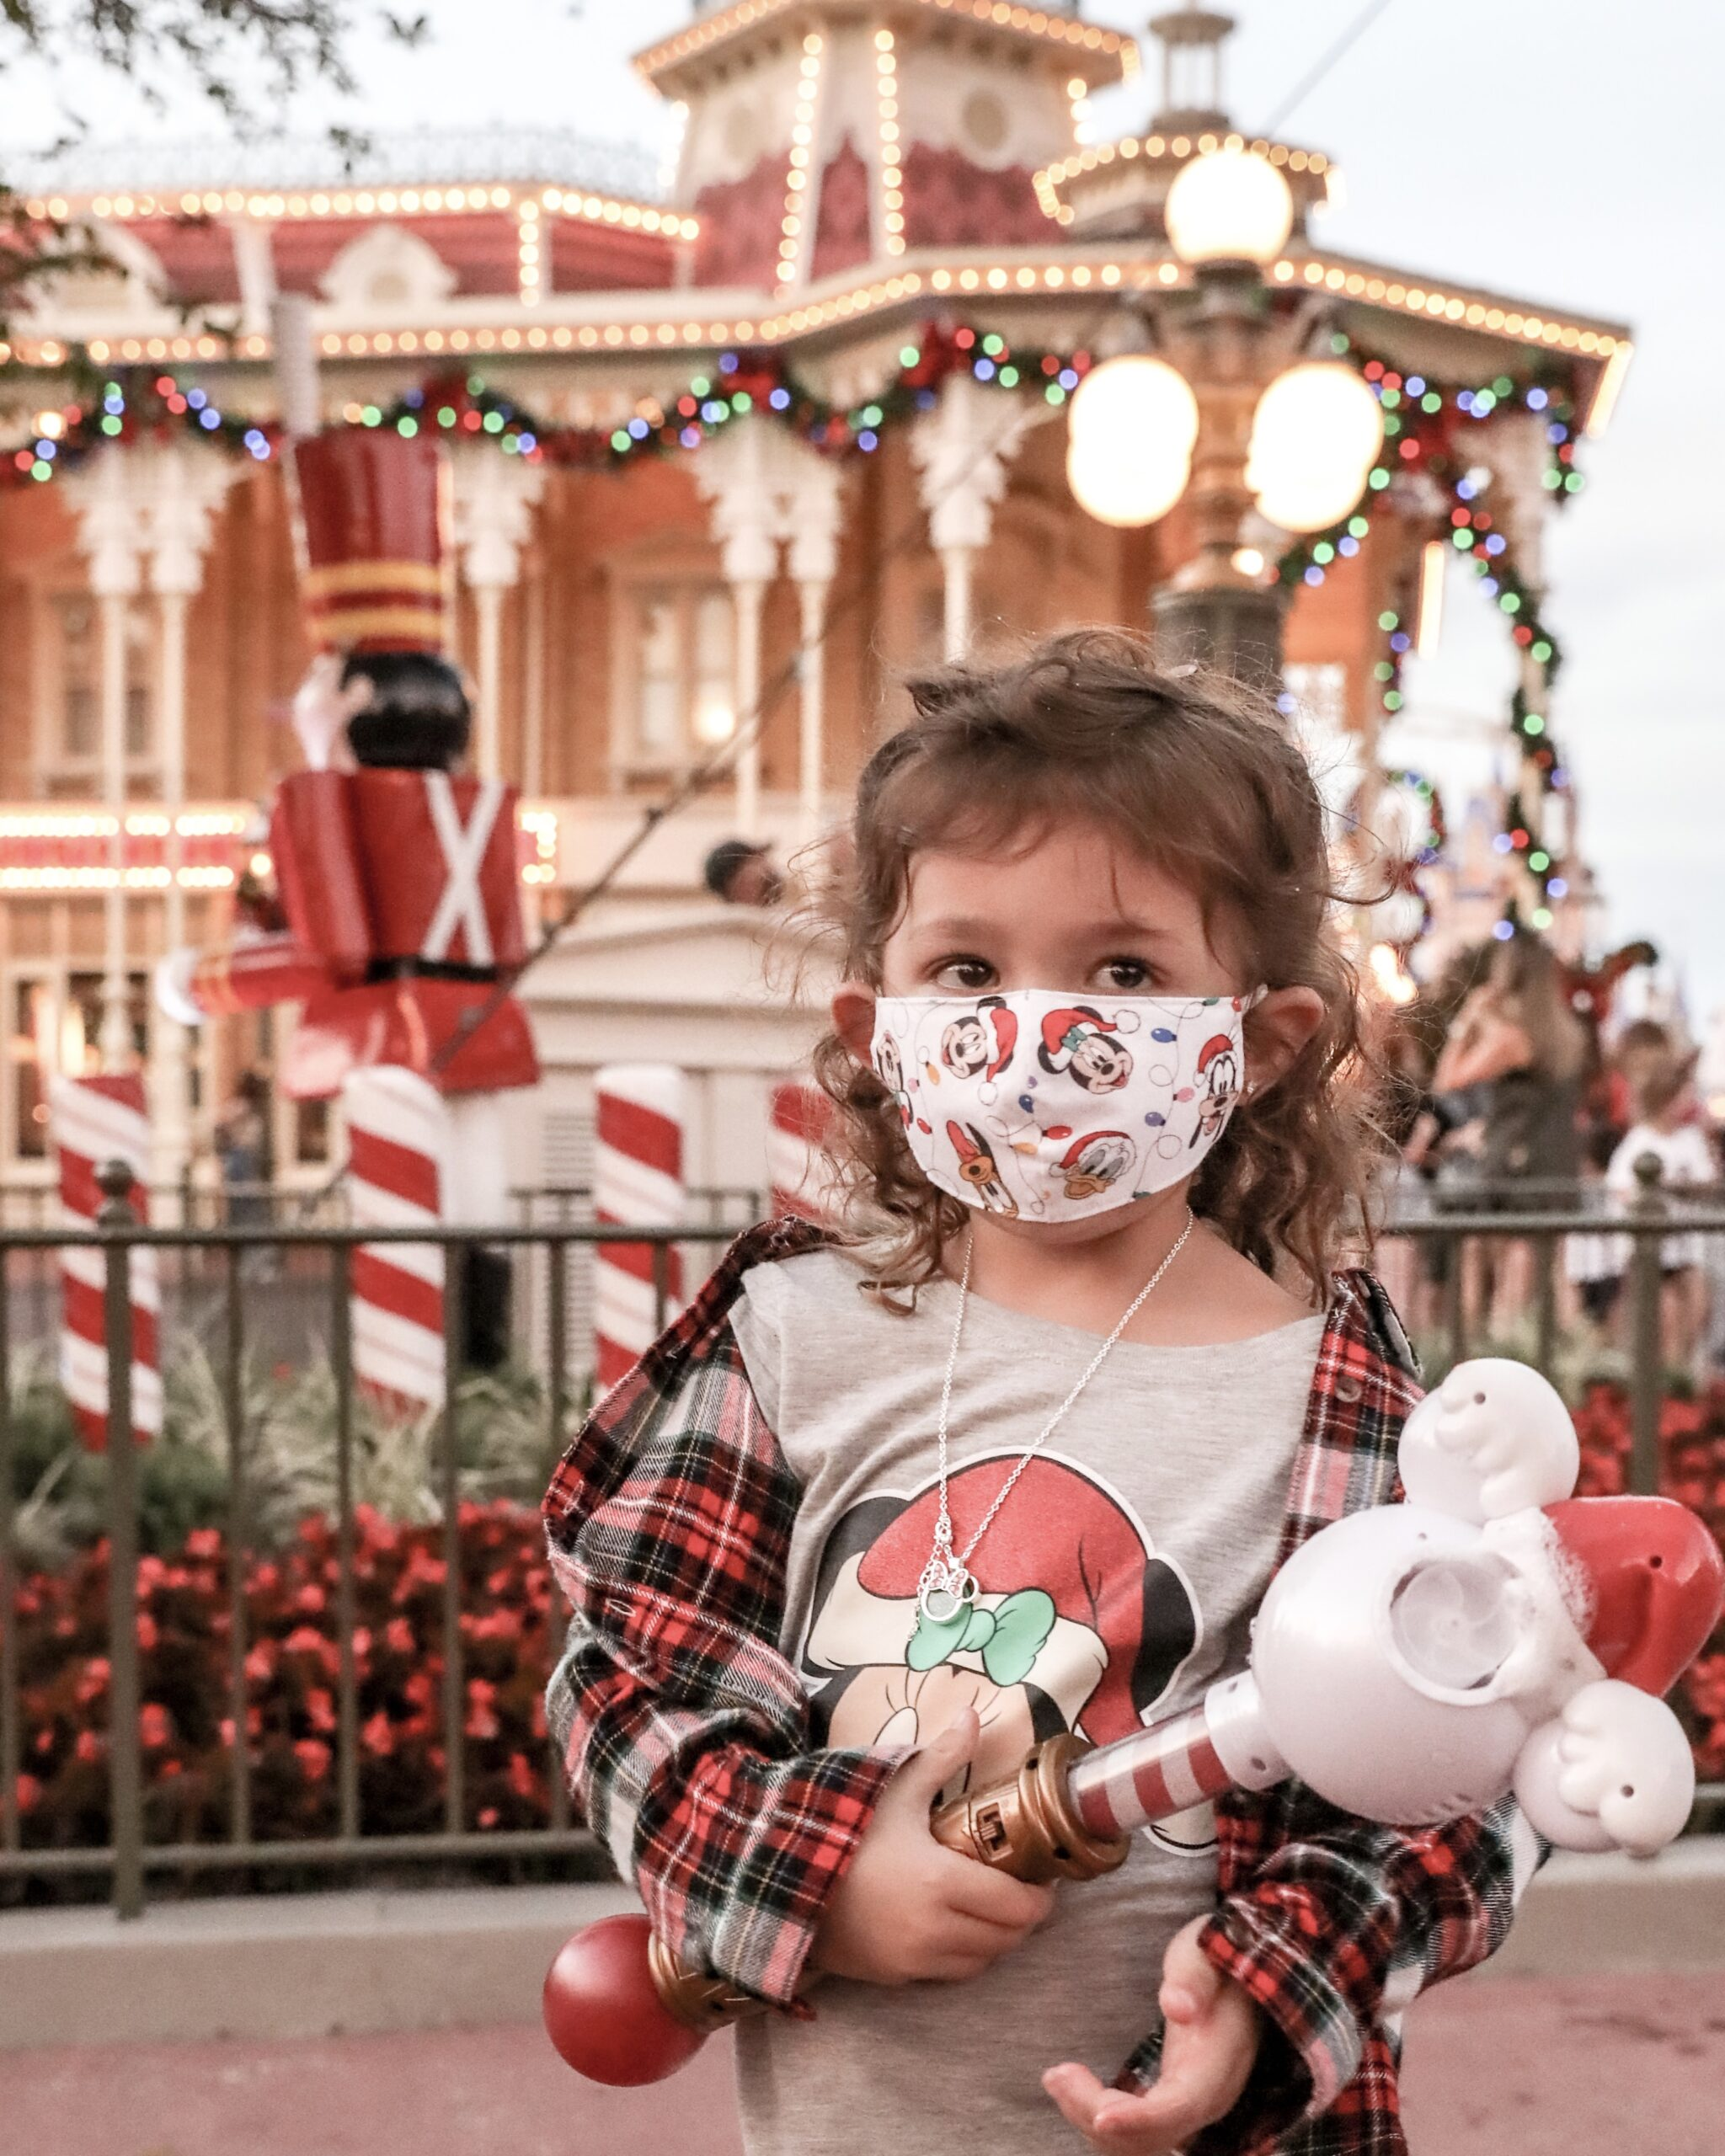 Disney during Christmas time in 2020 - My experience in Walt Disney World during a global pandemic | Magic Kingdom | Toy Story Land in Hollywood Studios | Christmas Decorations, Holiday Treats & Merchandise | Safety Measures in Place | Rides & Wait Times | Mask Requirements | Park Capacity | #Disney #DisneyWorld #MagicKingdom #HollywoodStudios #ToyStoryLand #Christmas #ChristmasDecorations #ChristmasinDisney